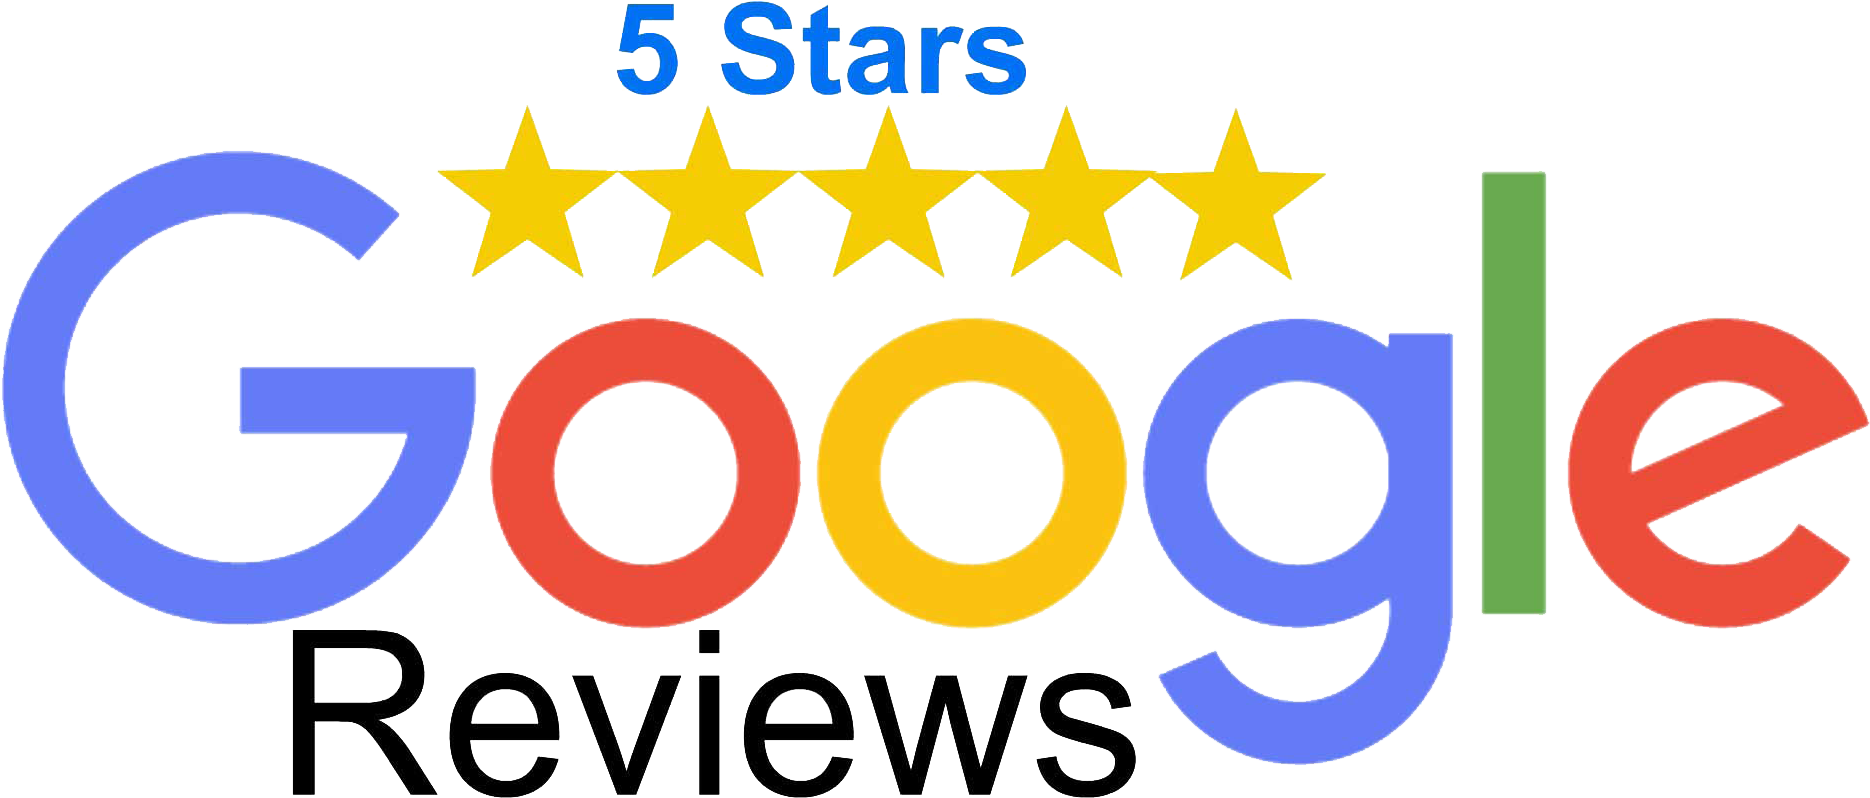 Download 5 Star Google Reviews Google Review 5 Stars Full Size